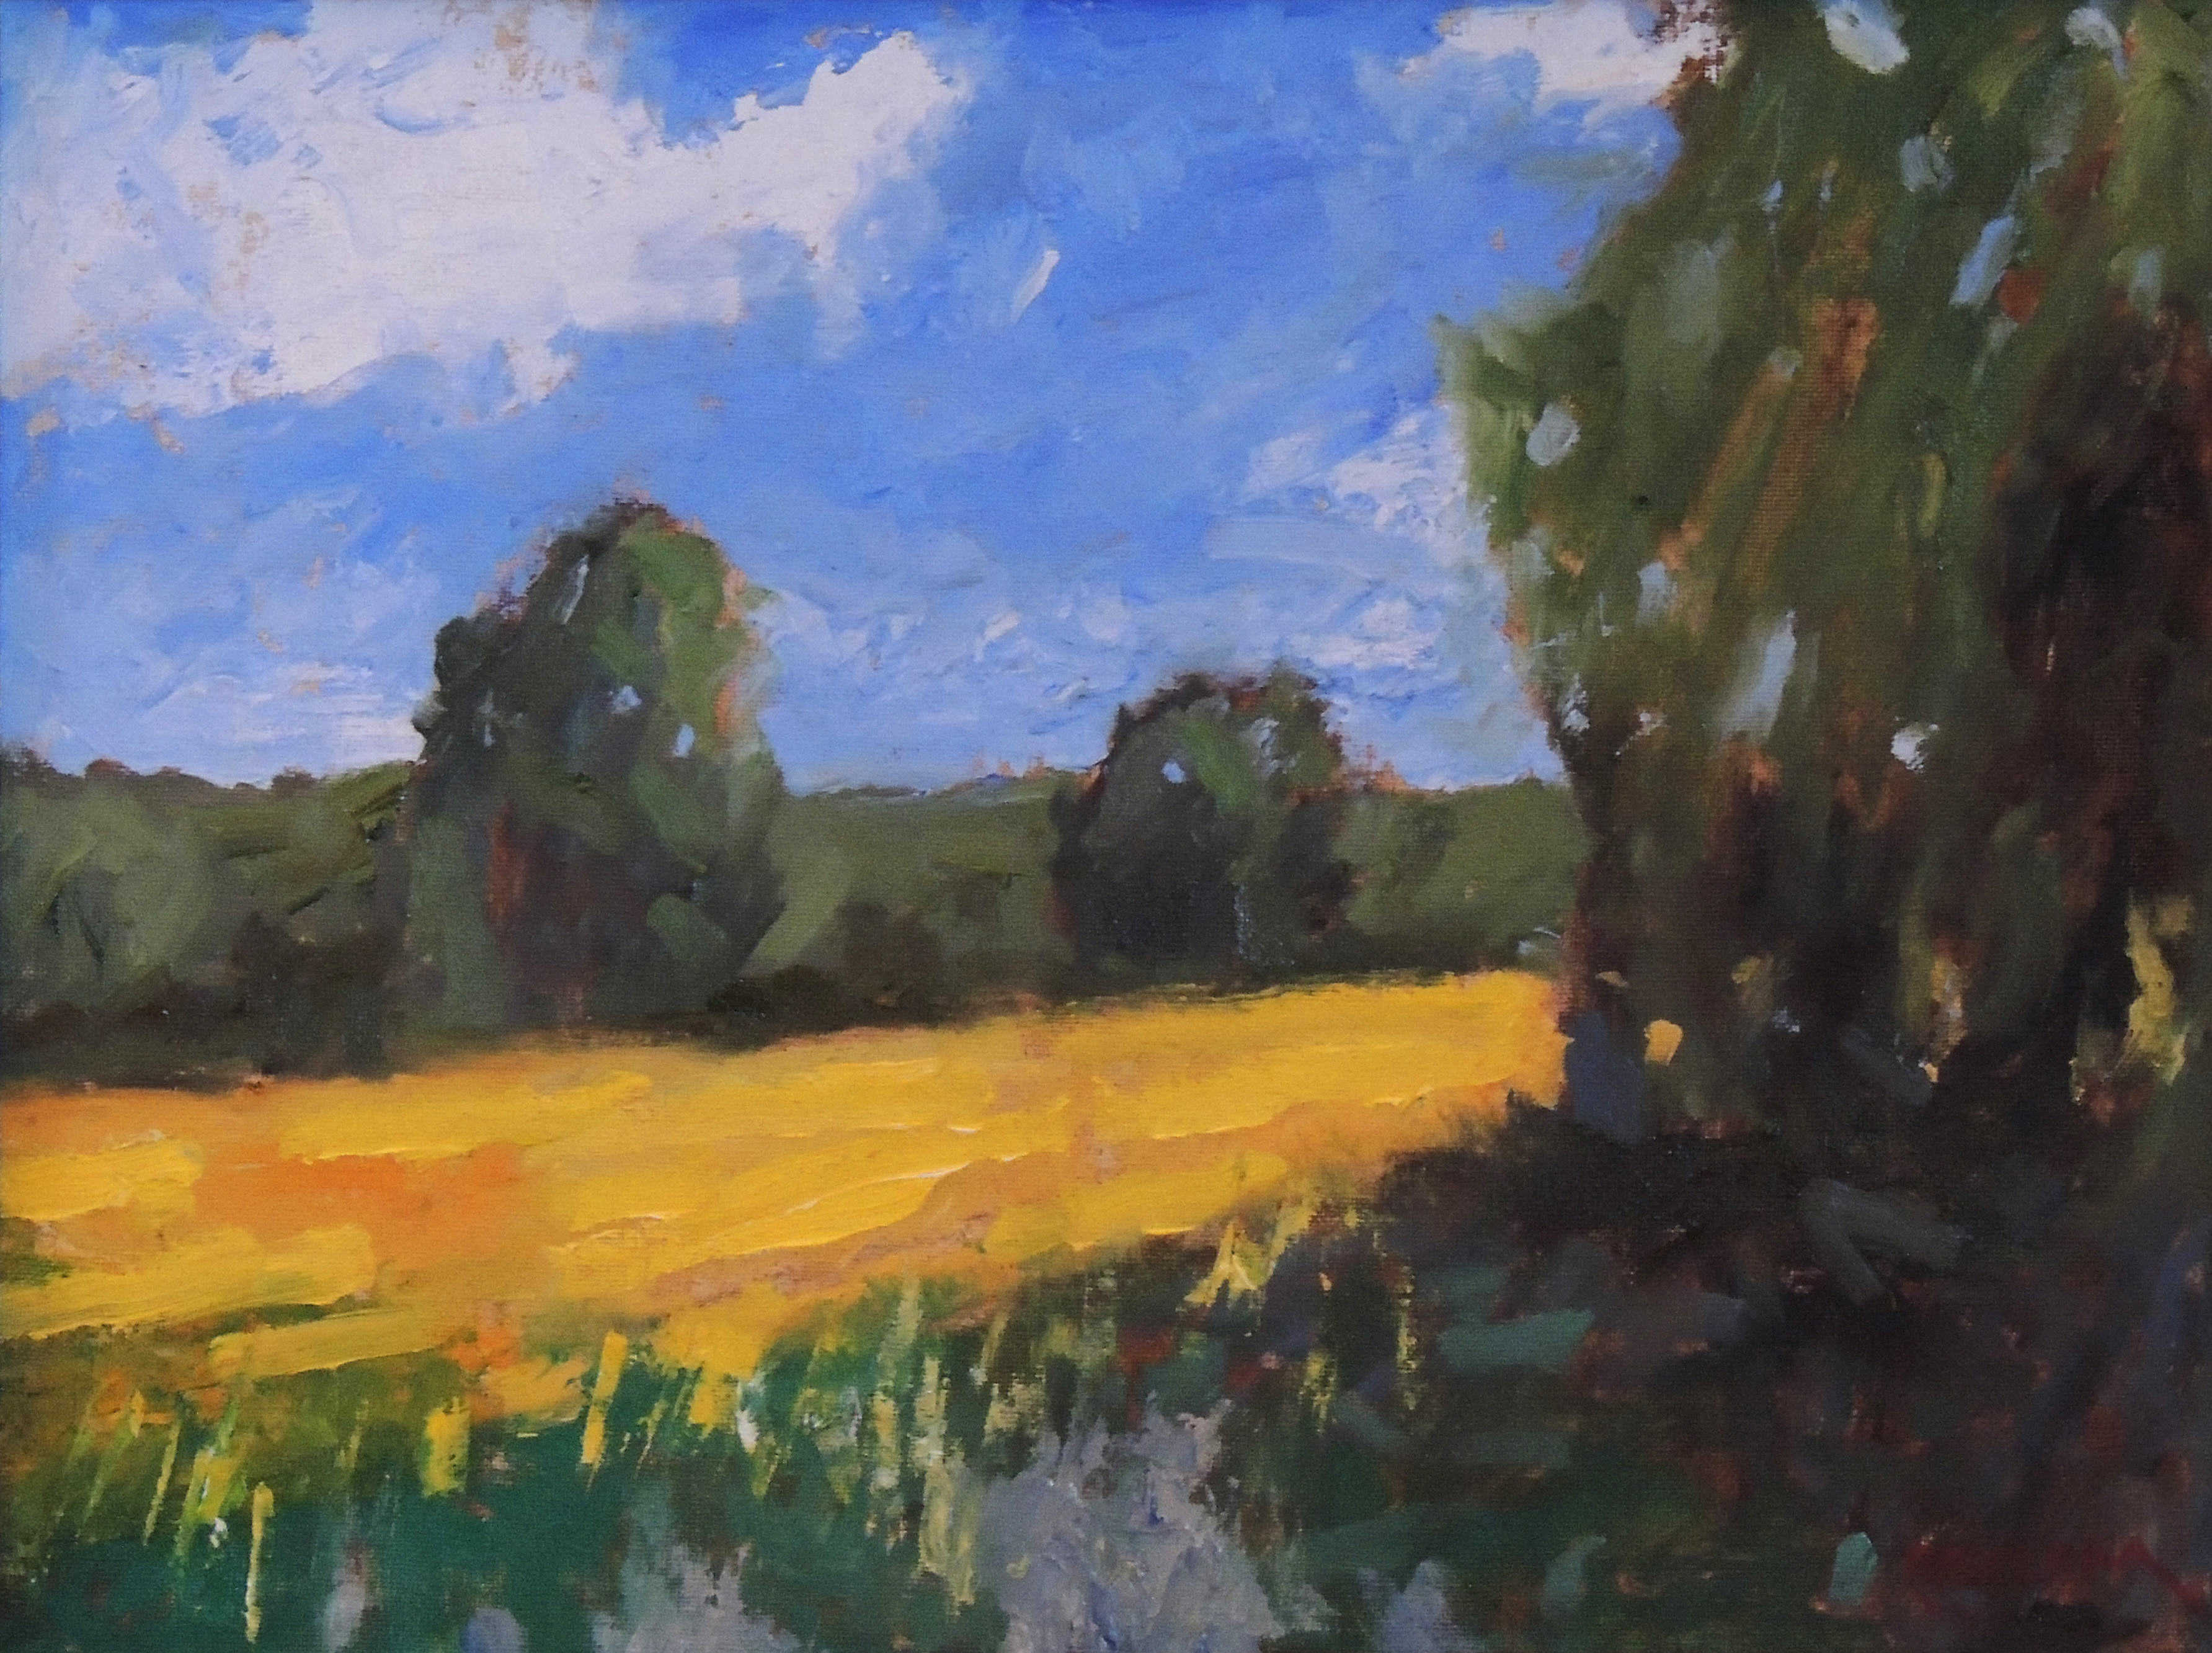 Richard Clem | RETURN TO MUSTARD FIELD ROCKY FORK PARK | oil